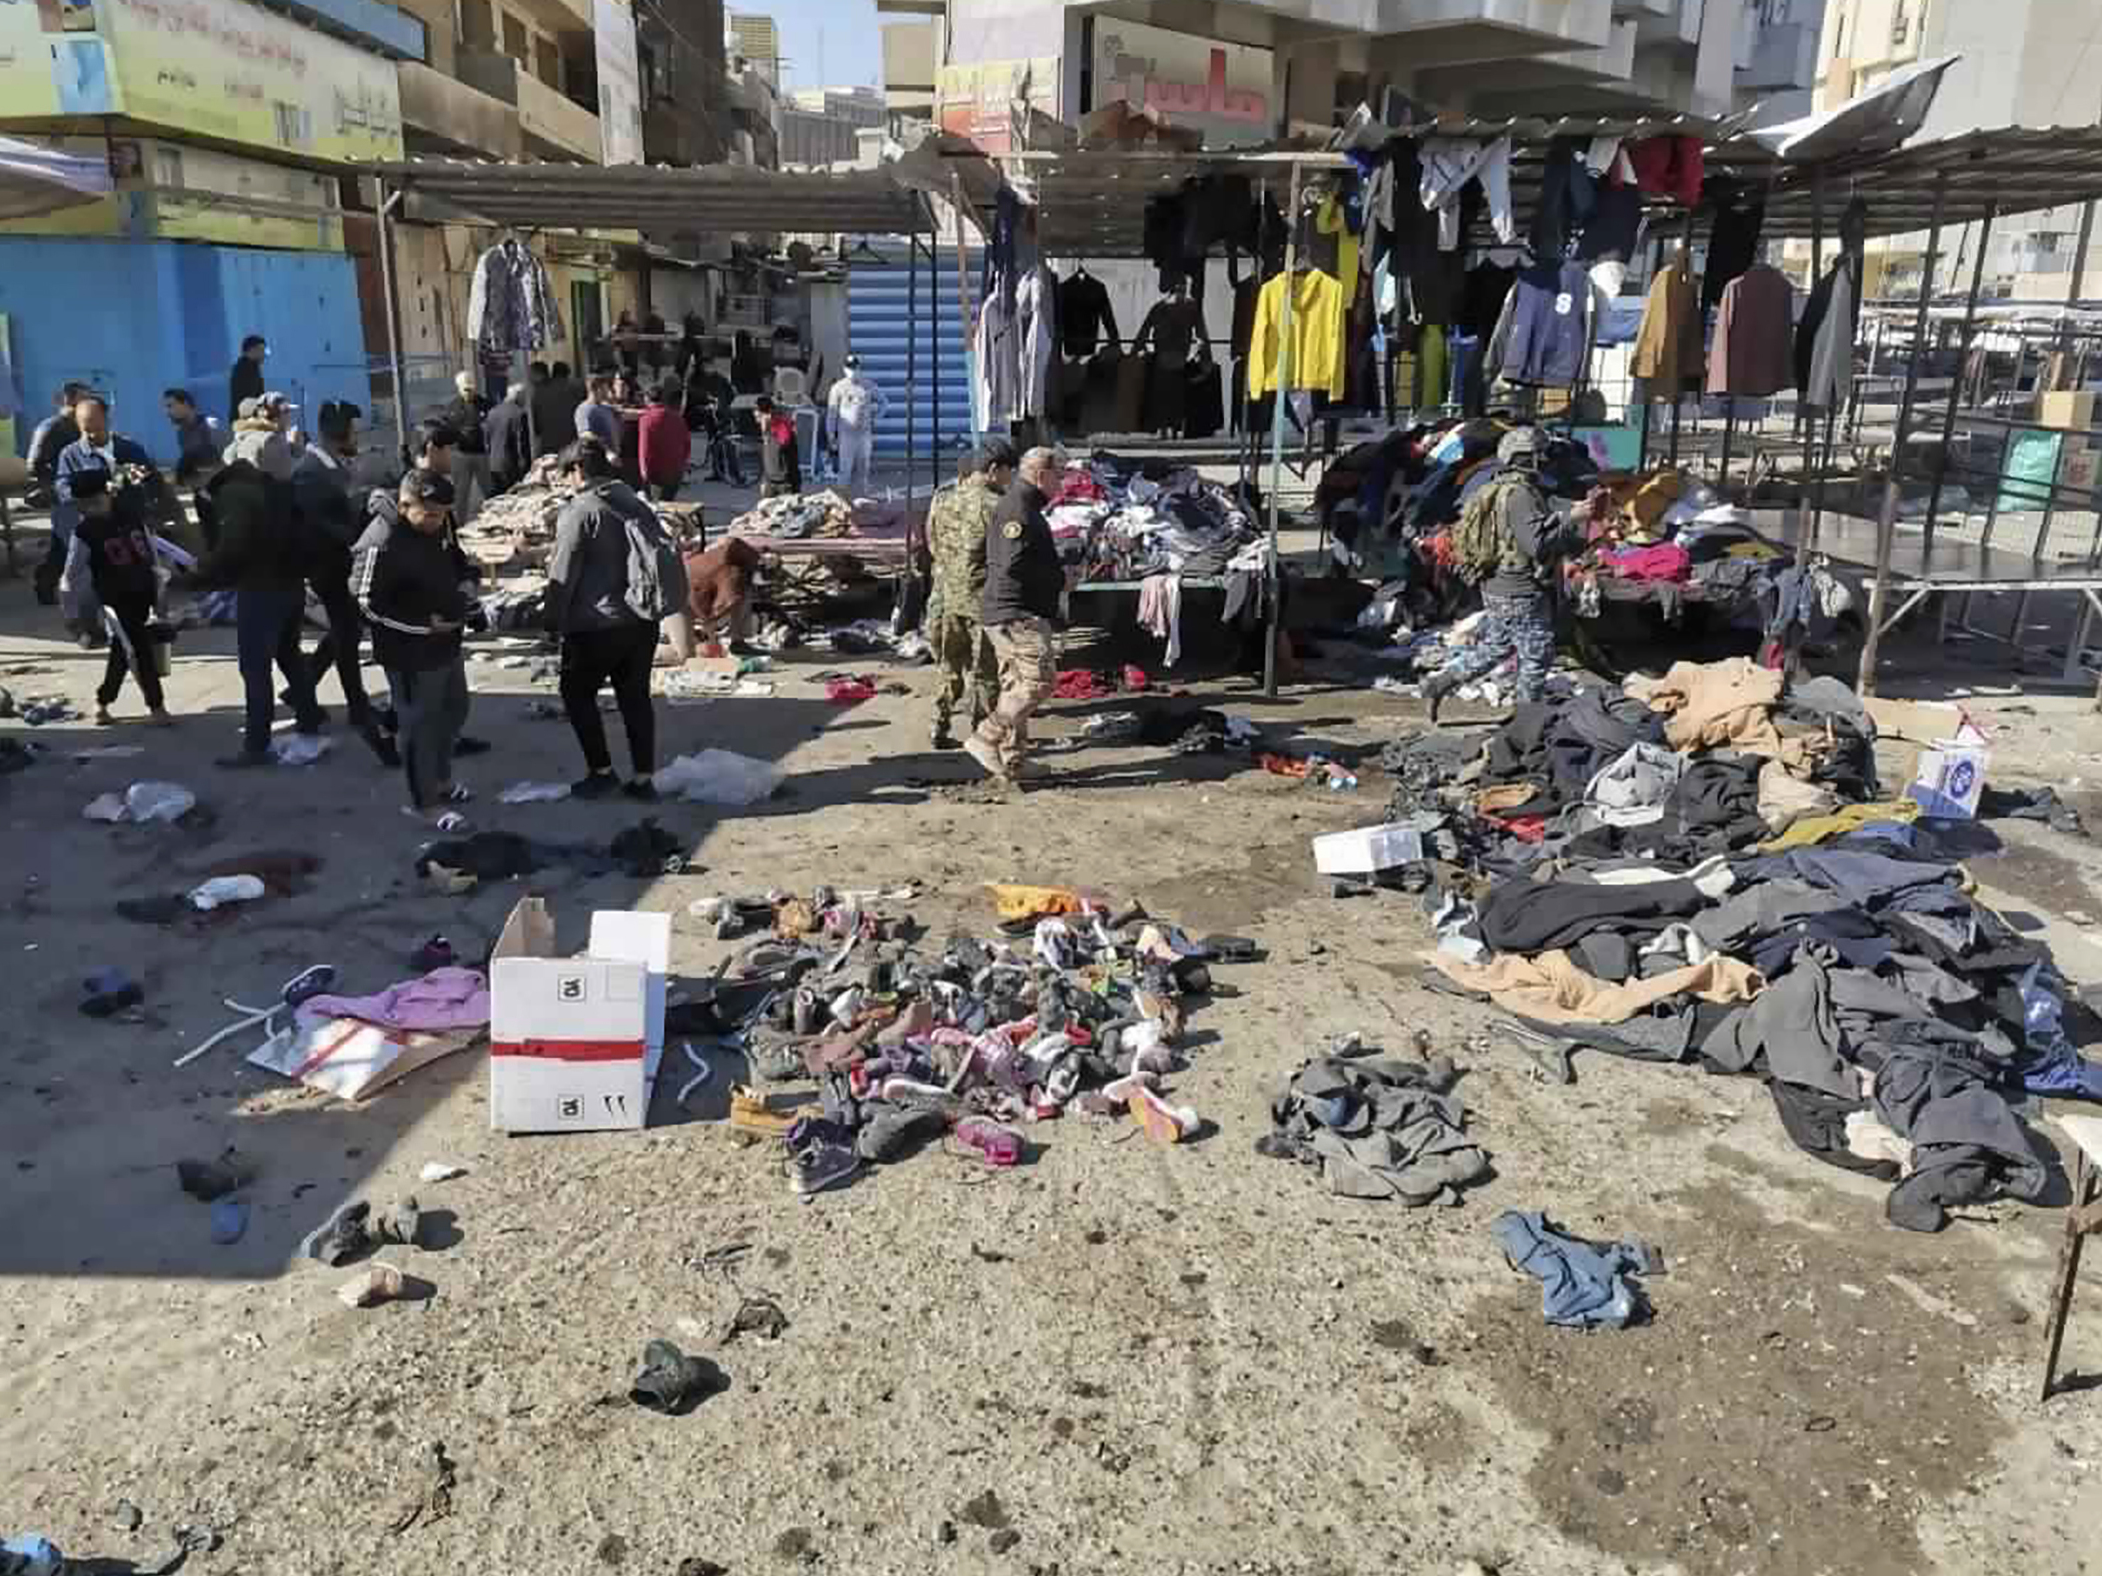 ISIS Claims Baghdad Twin Bombing That Killed 32, Wounded 110